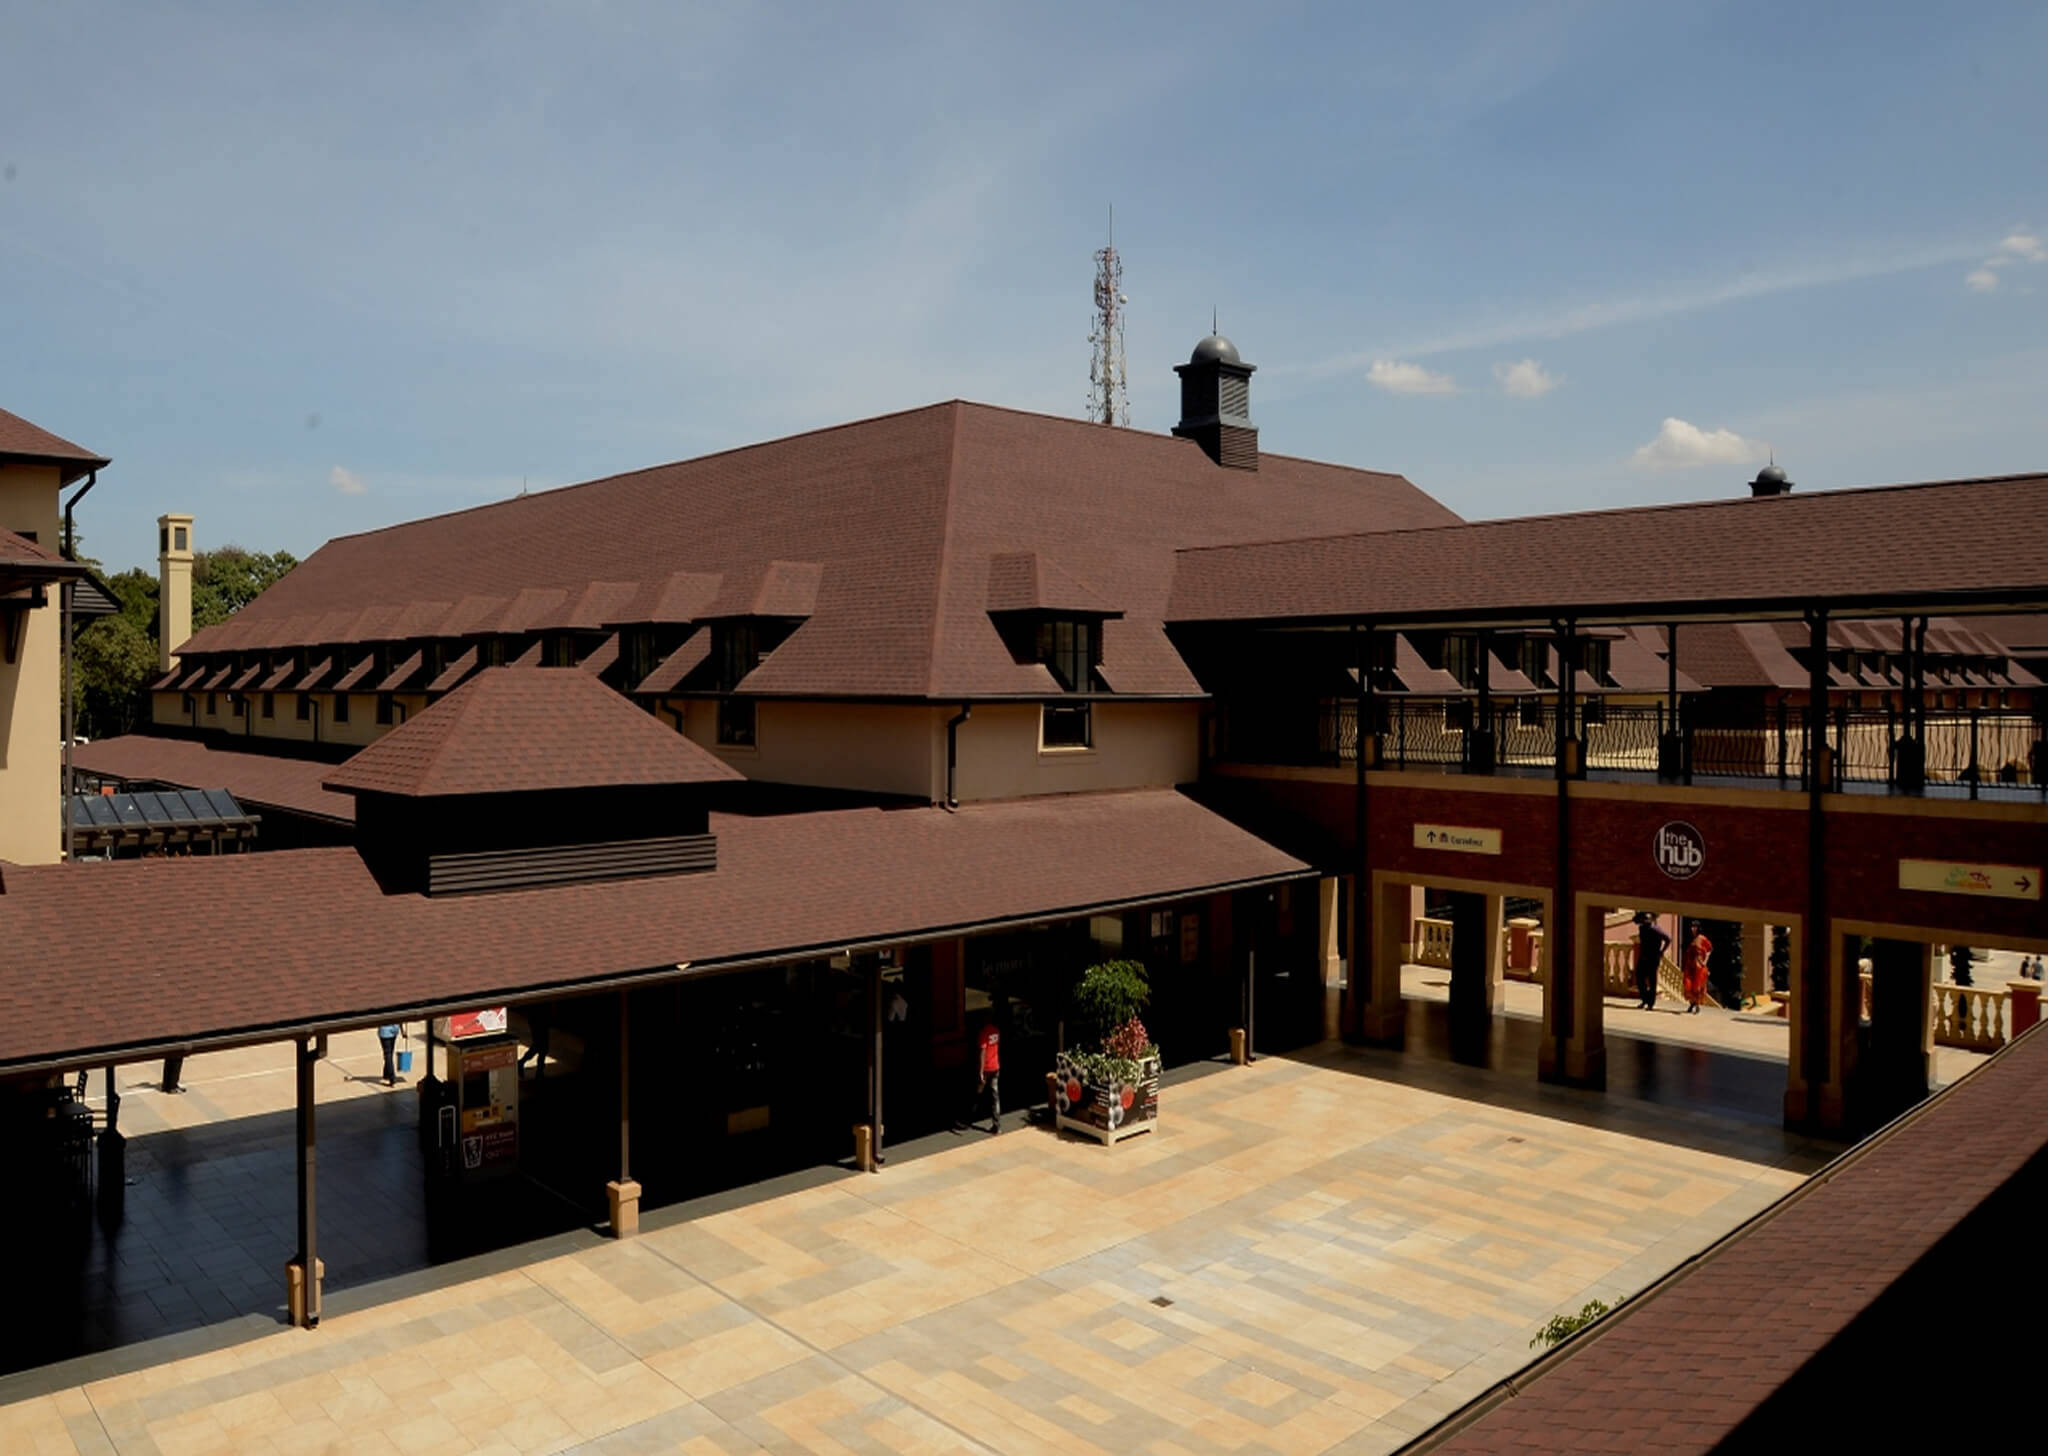 The Hub-Roofing Shingles Project